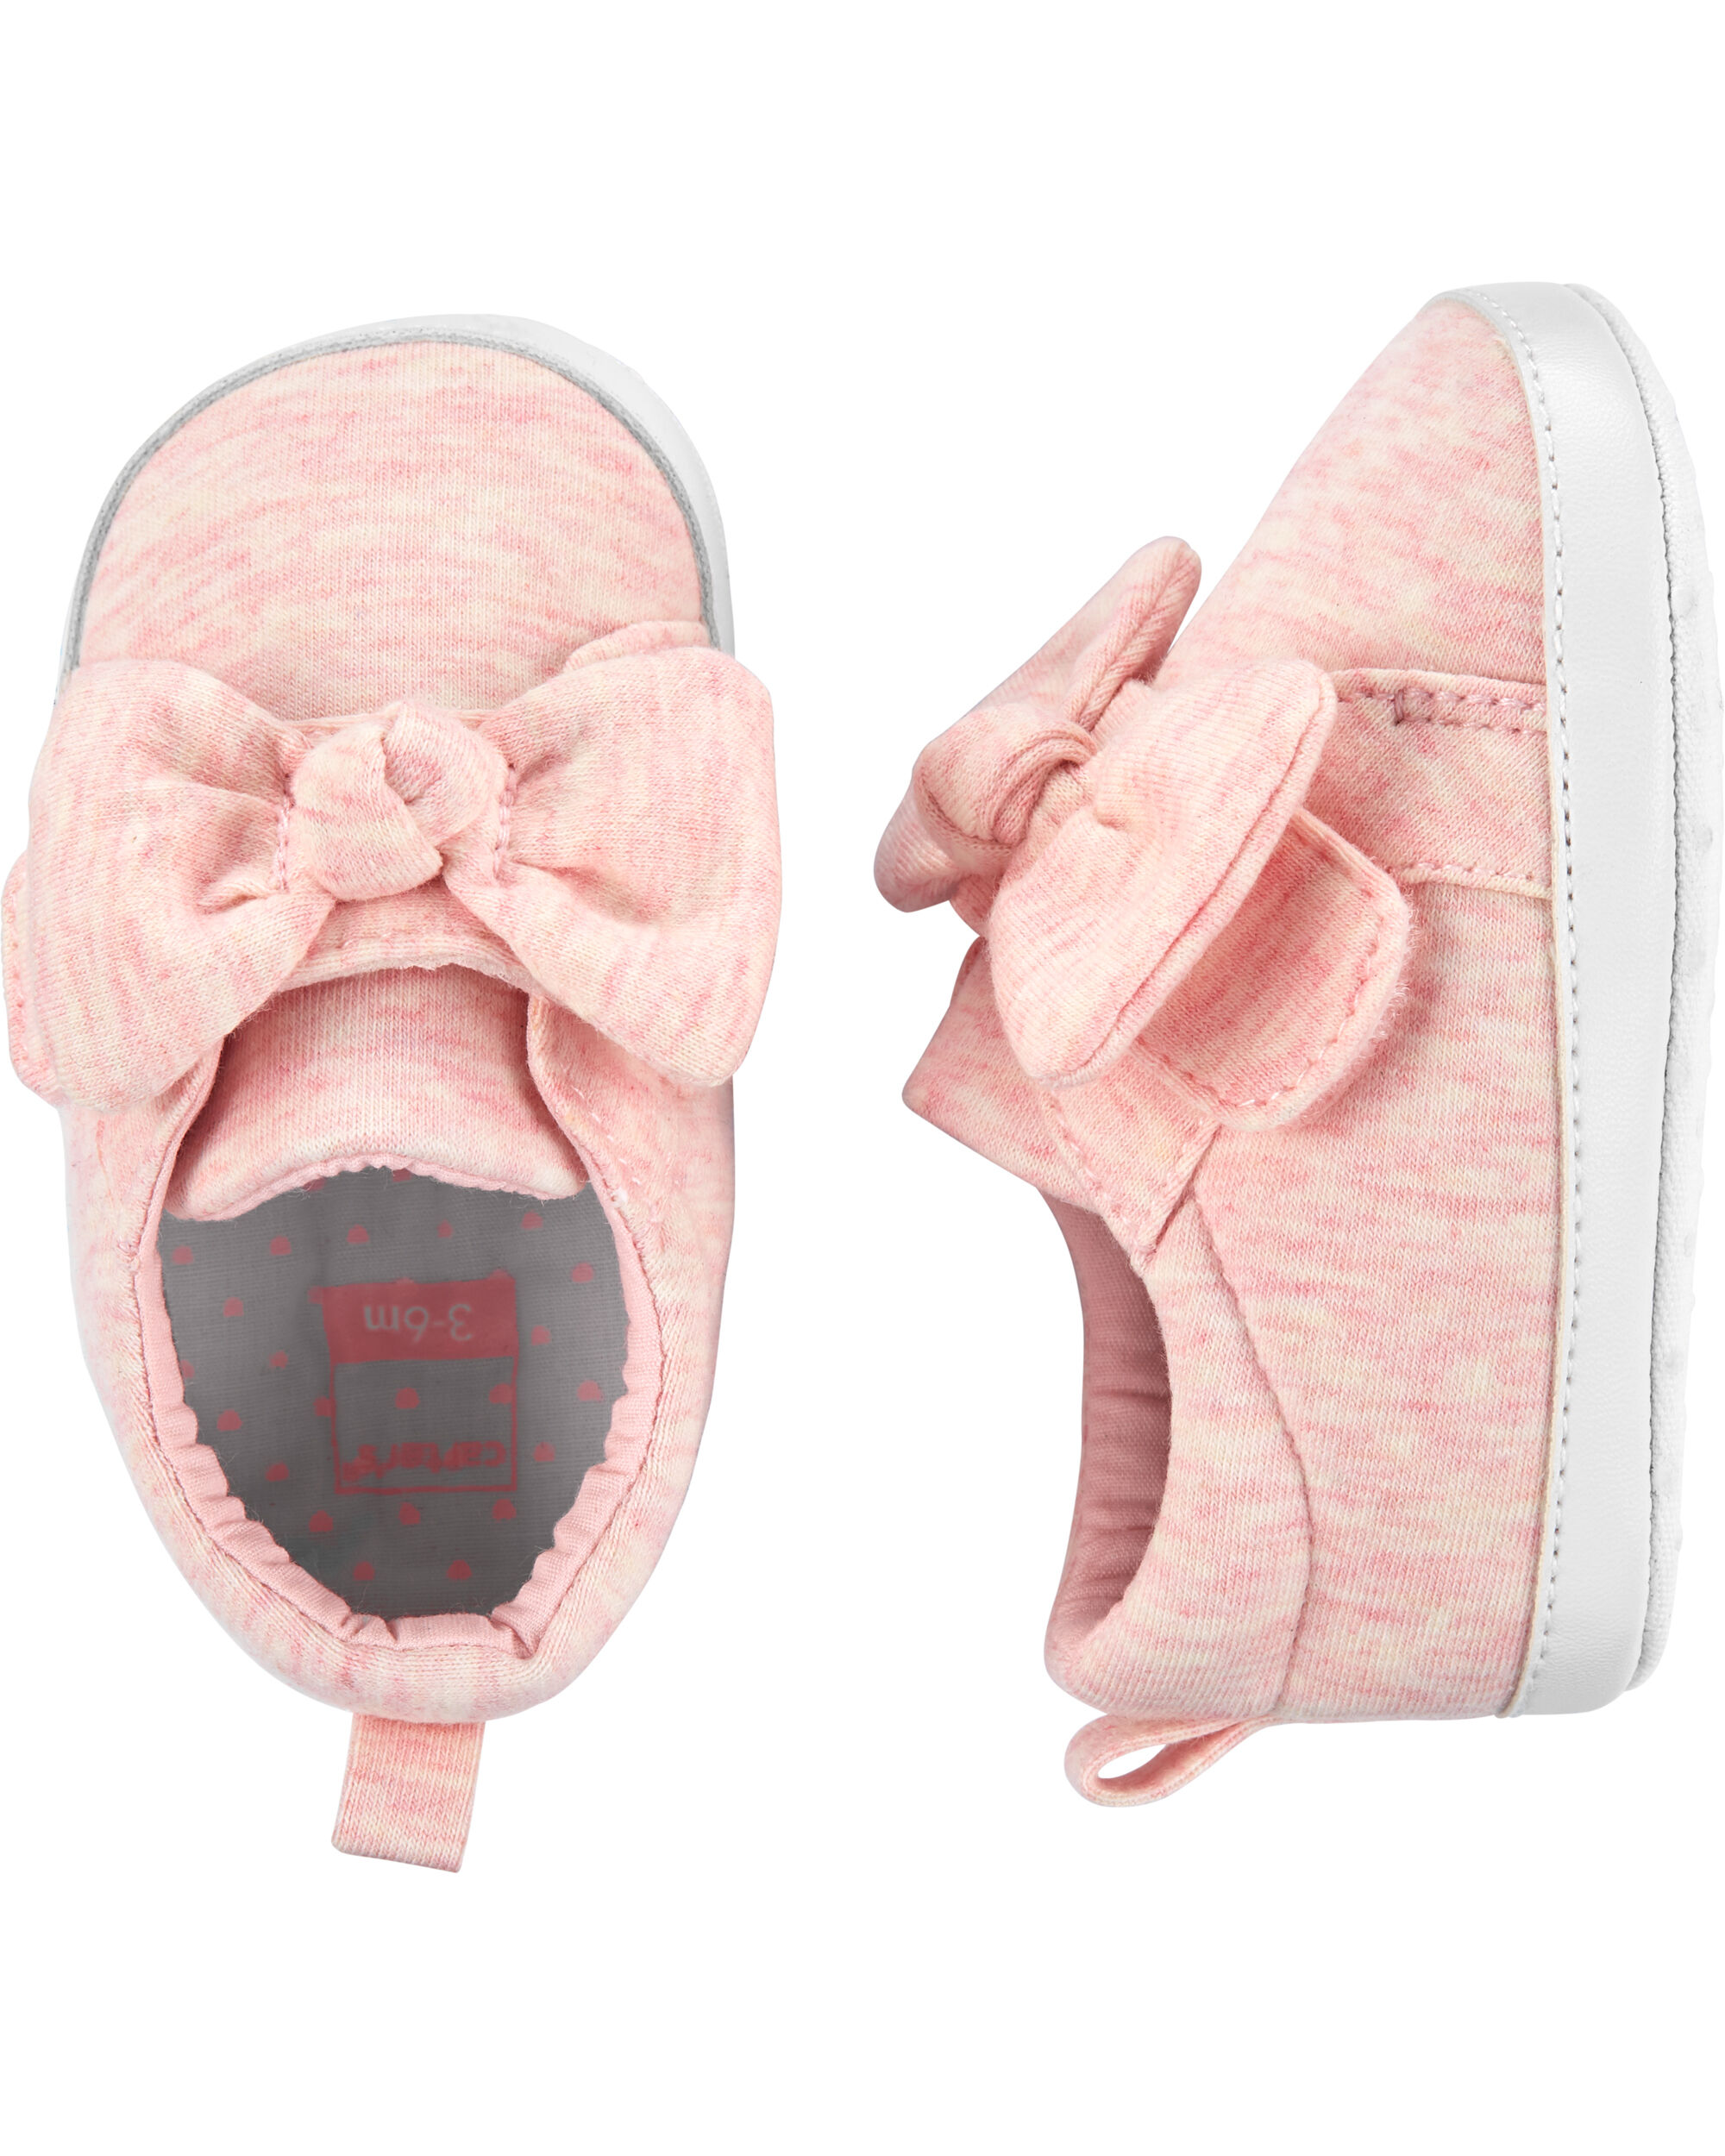 Carter's Bow Sneaker Baby Shoes